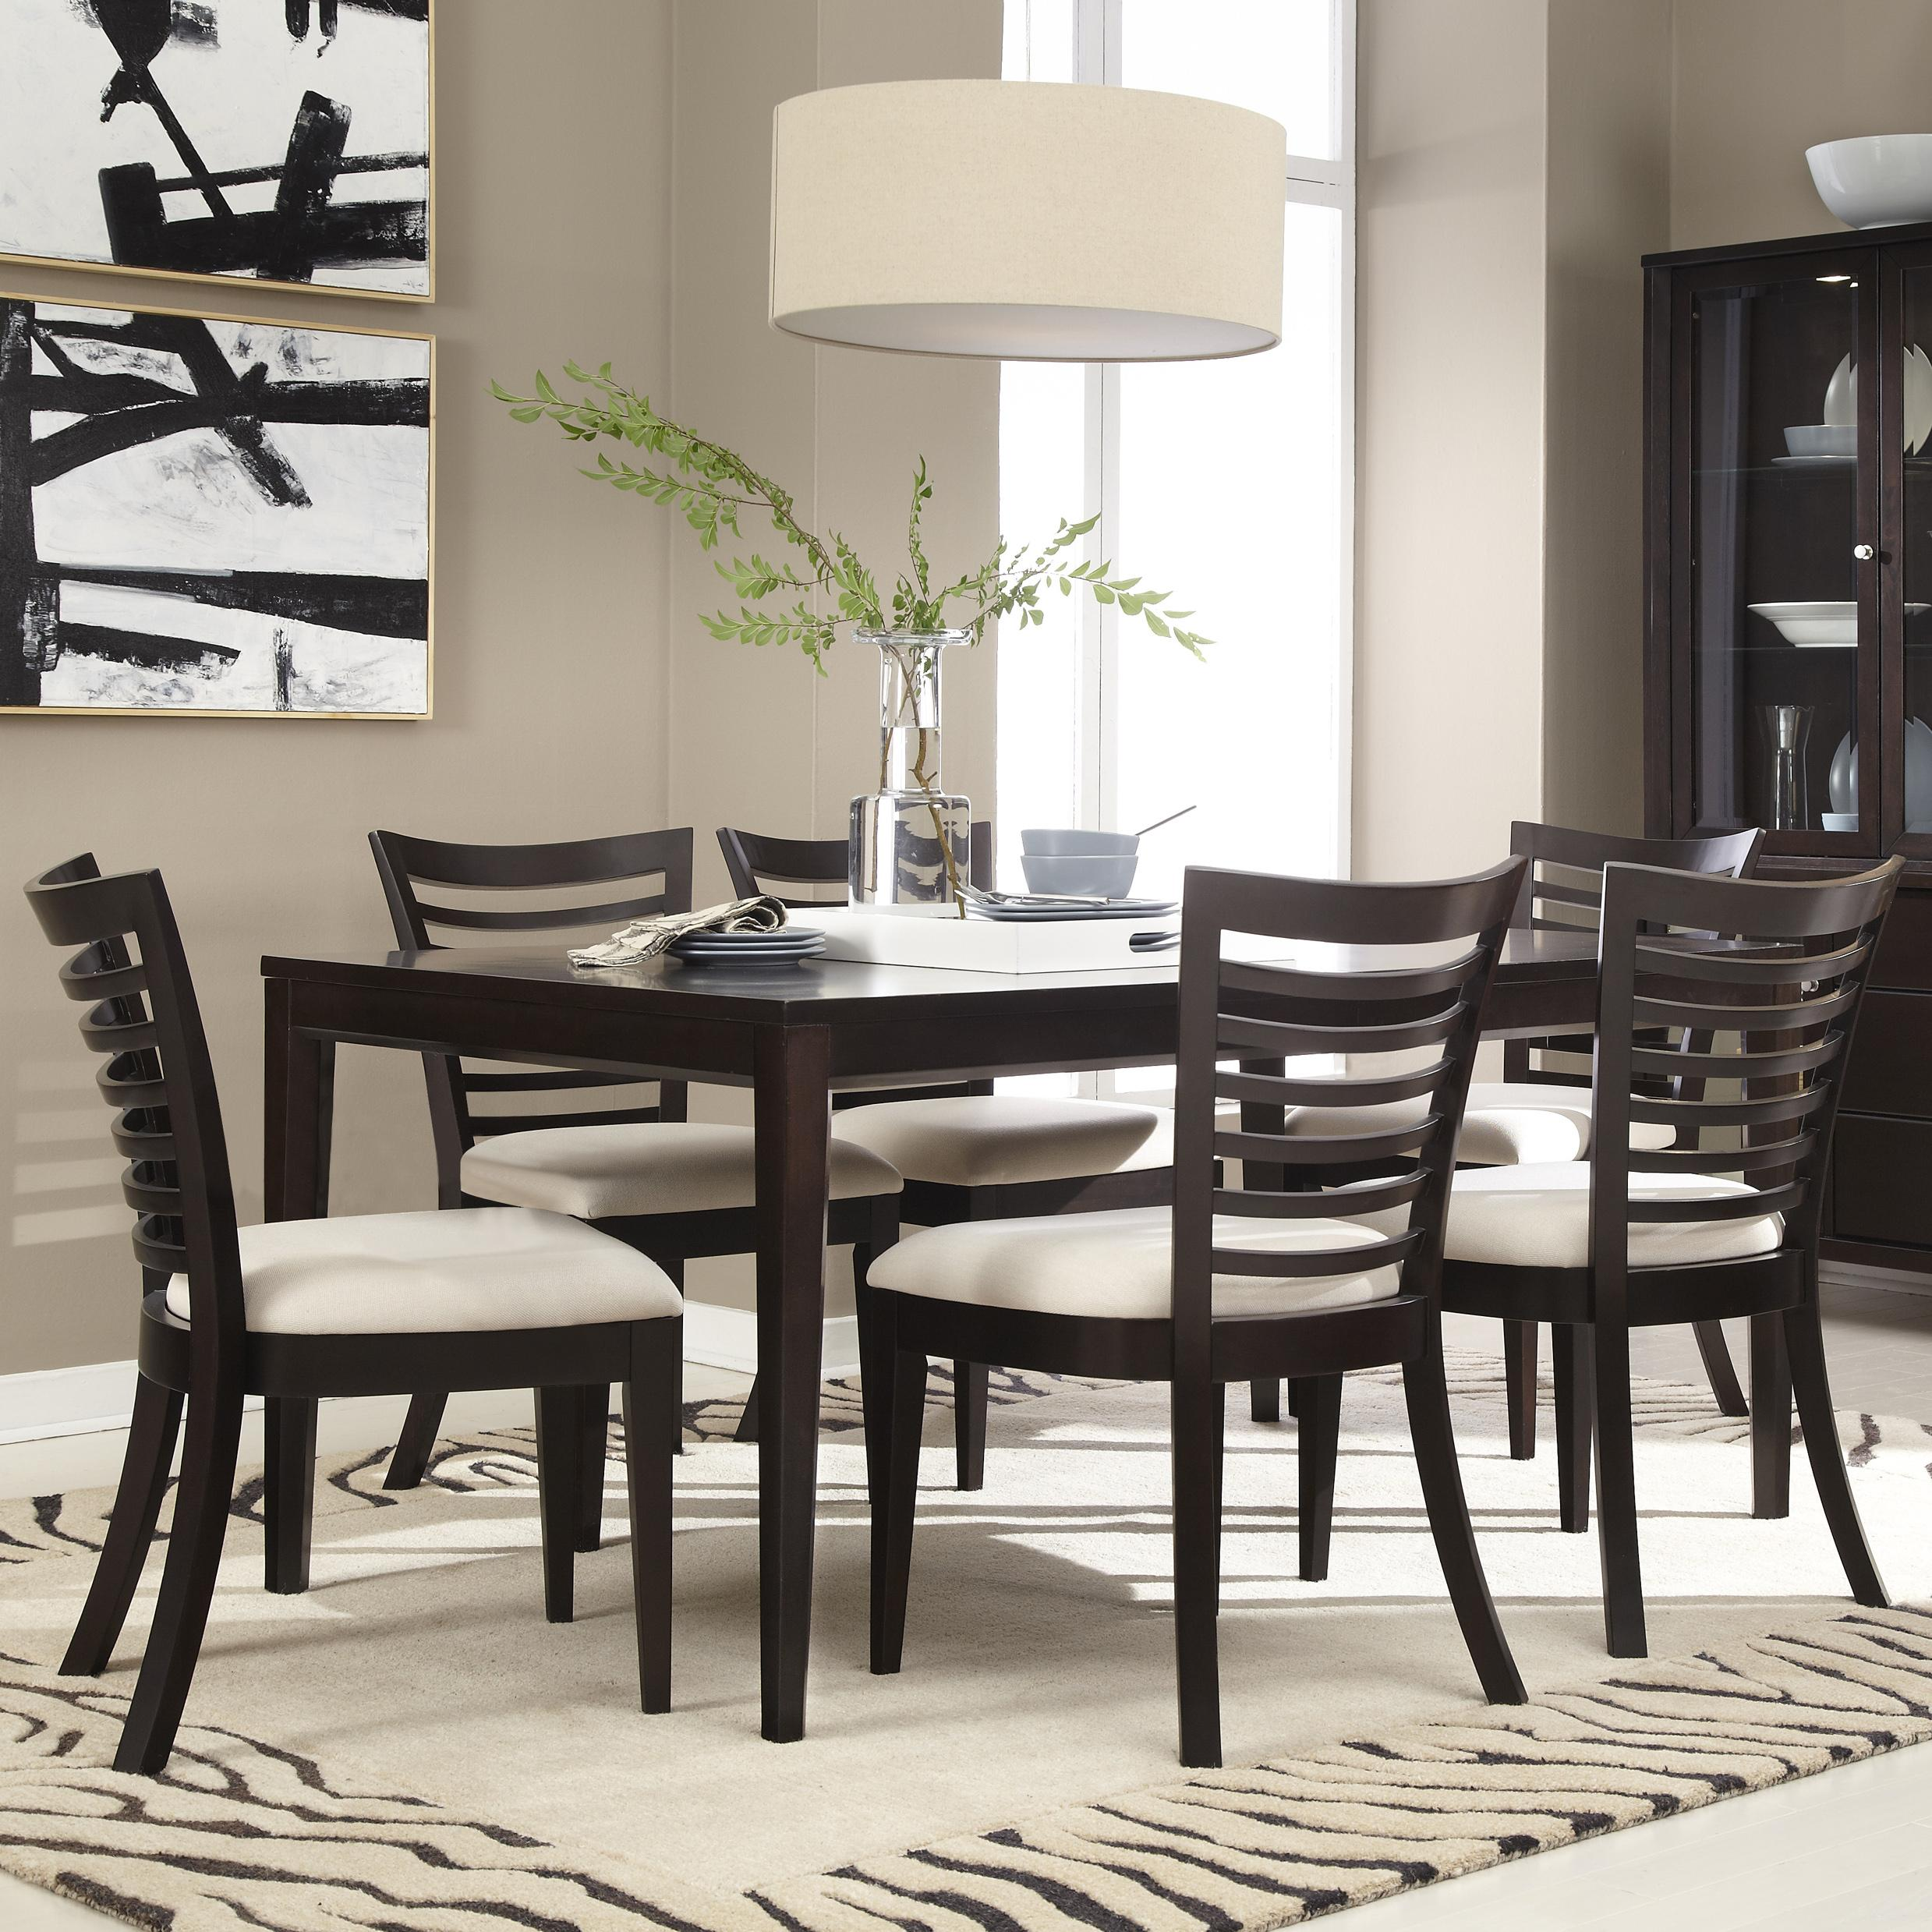 Belfort Select East Gate 7-Pc. Table and Chair Set - Item Number: 355-150+6x120